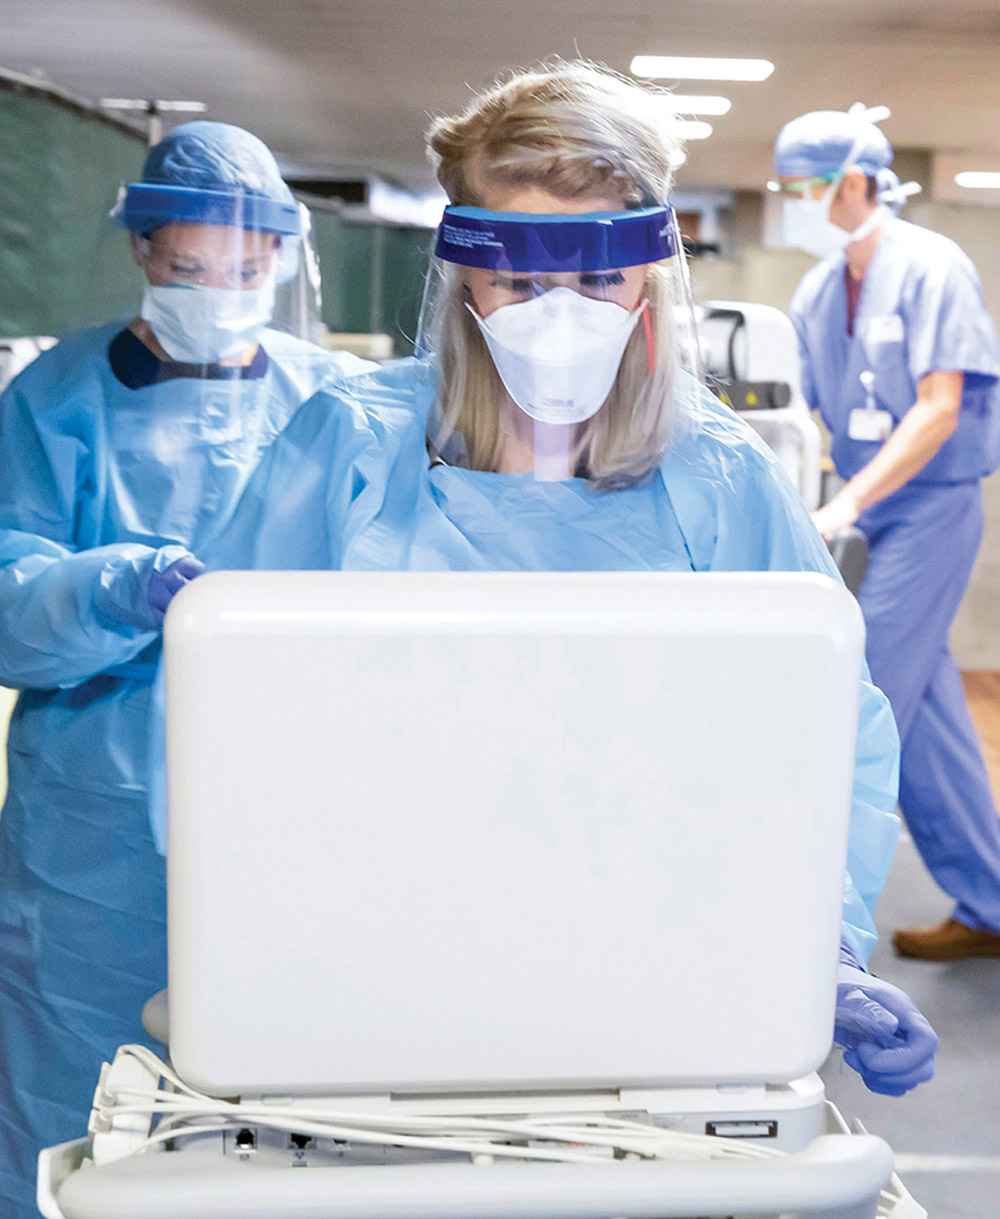 photo of health care workers in masks and scrubs looking at a laptop screen